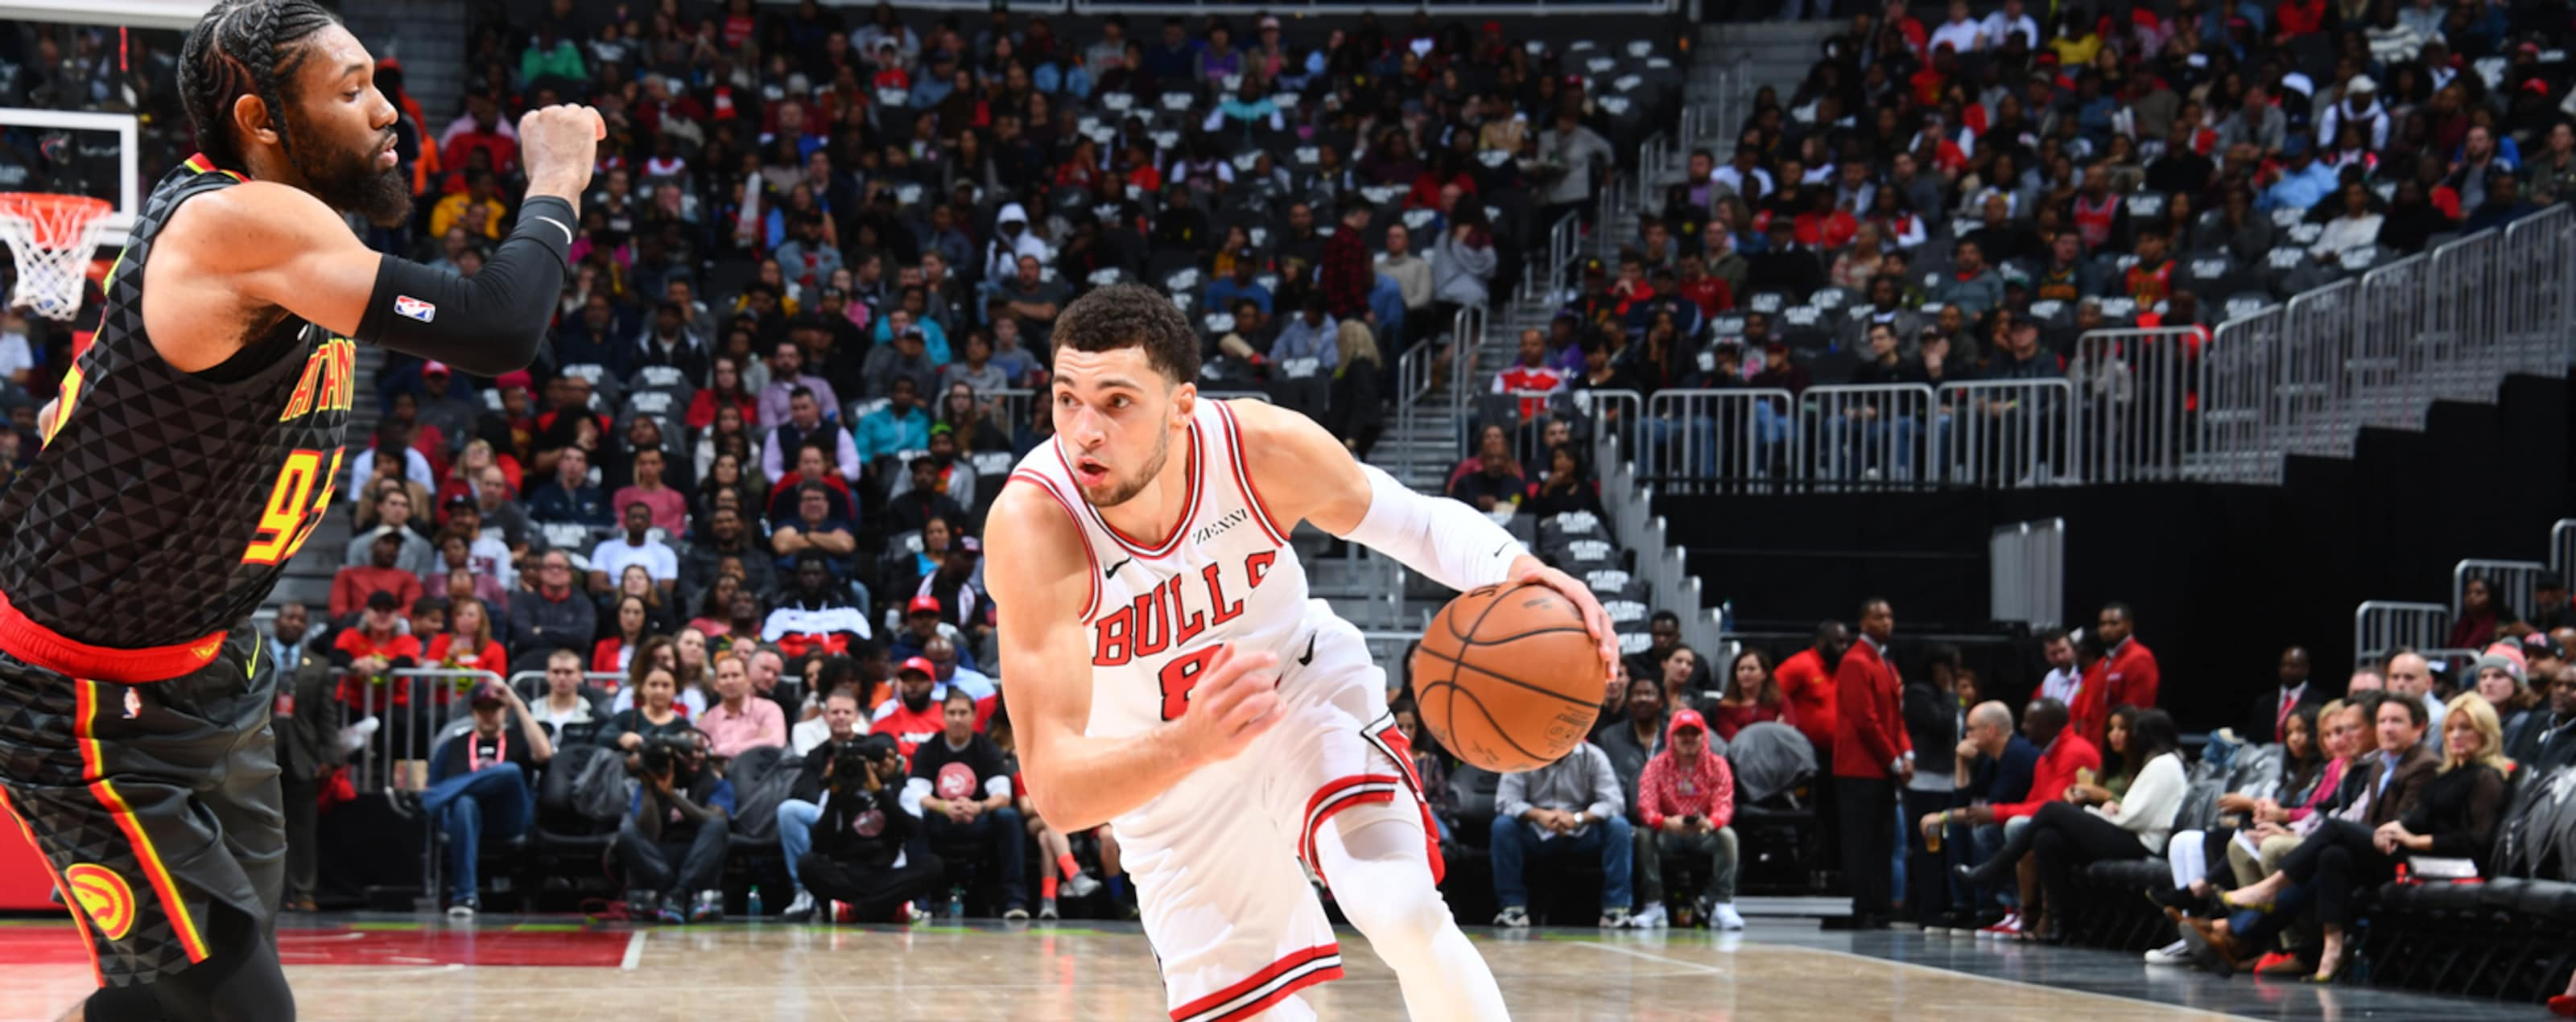 Zach LaVine #8 of the Chicago Bulls dribbles the ball against the Atlanta Hawks.